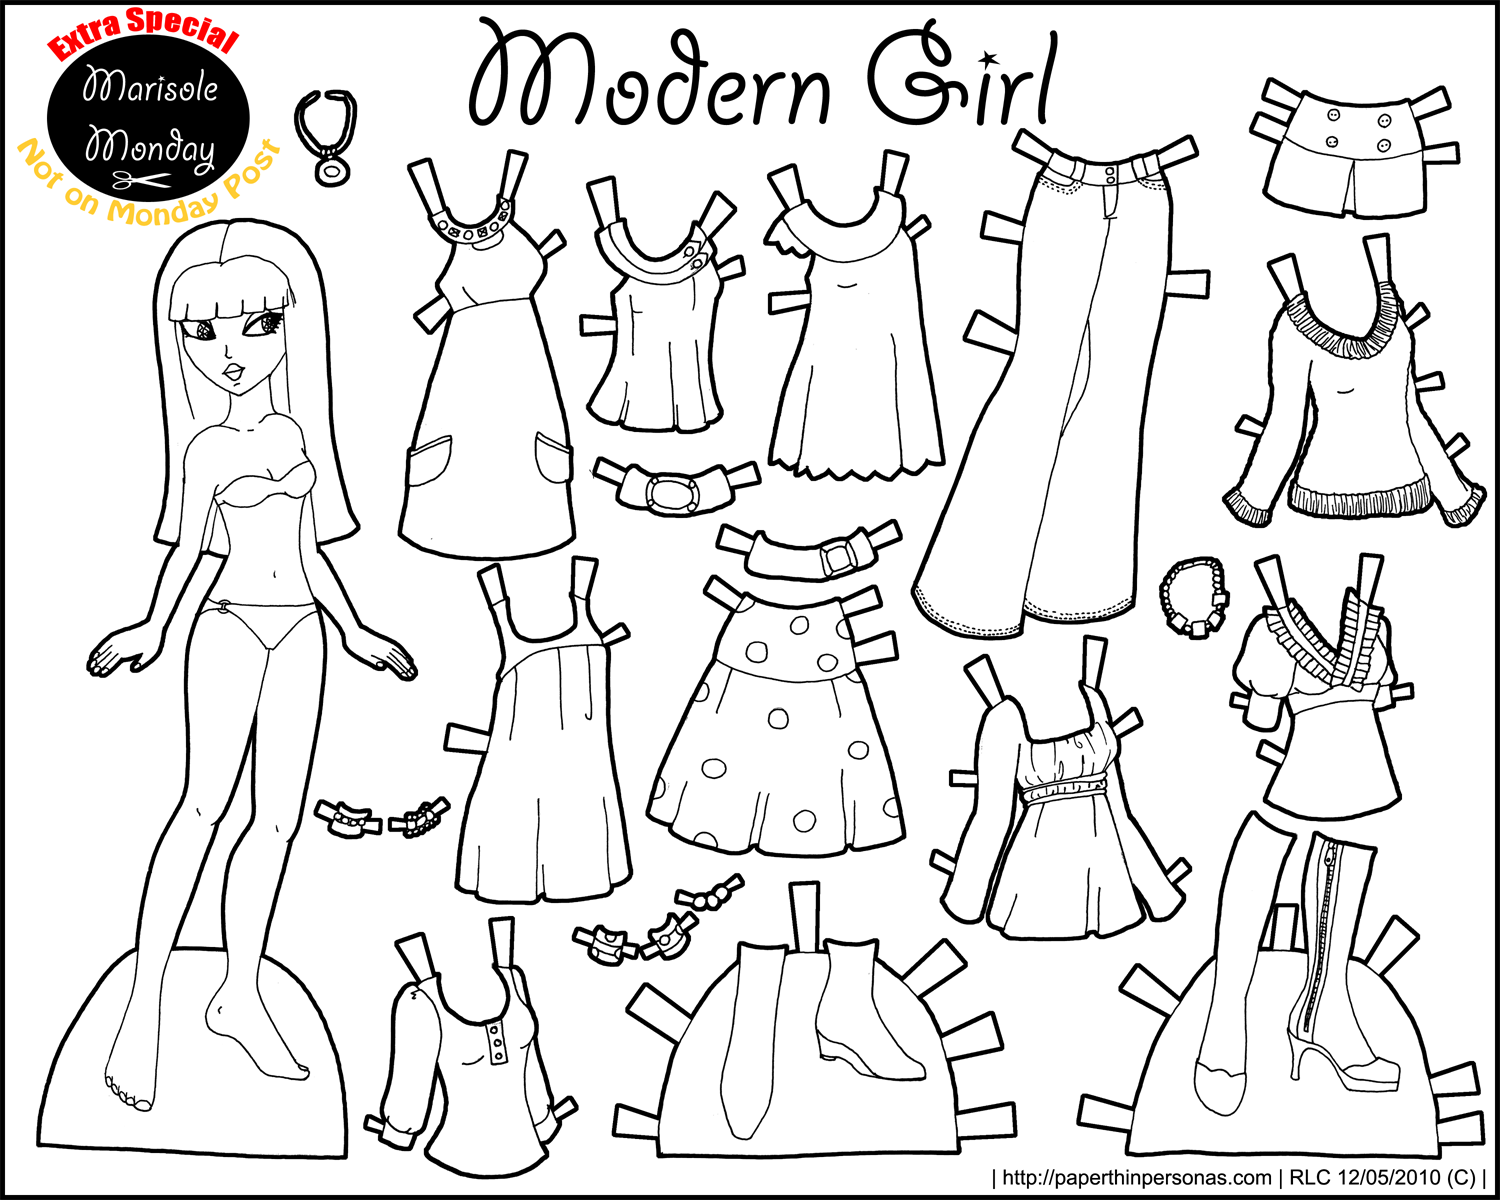 dress up paper doll marisole monday modern girl in black white coloring doll paper up dress